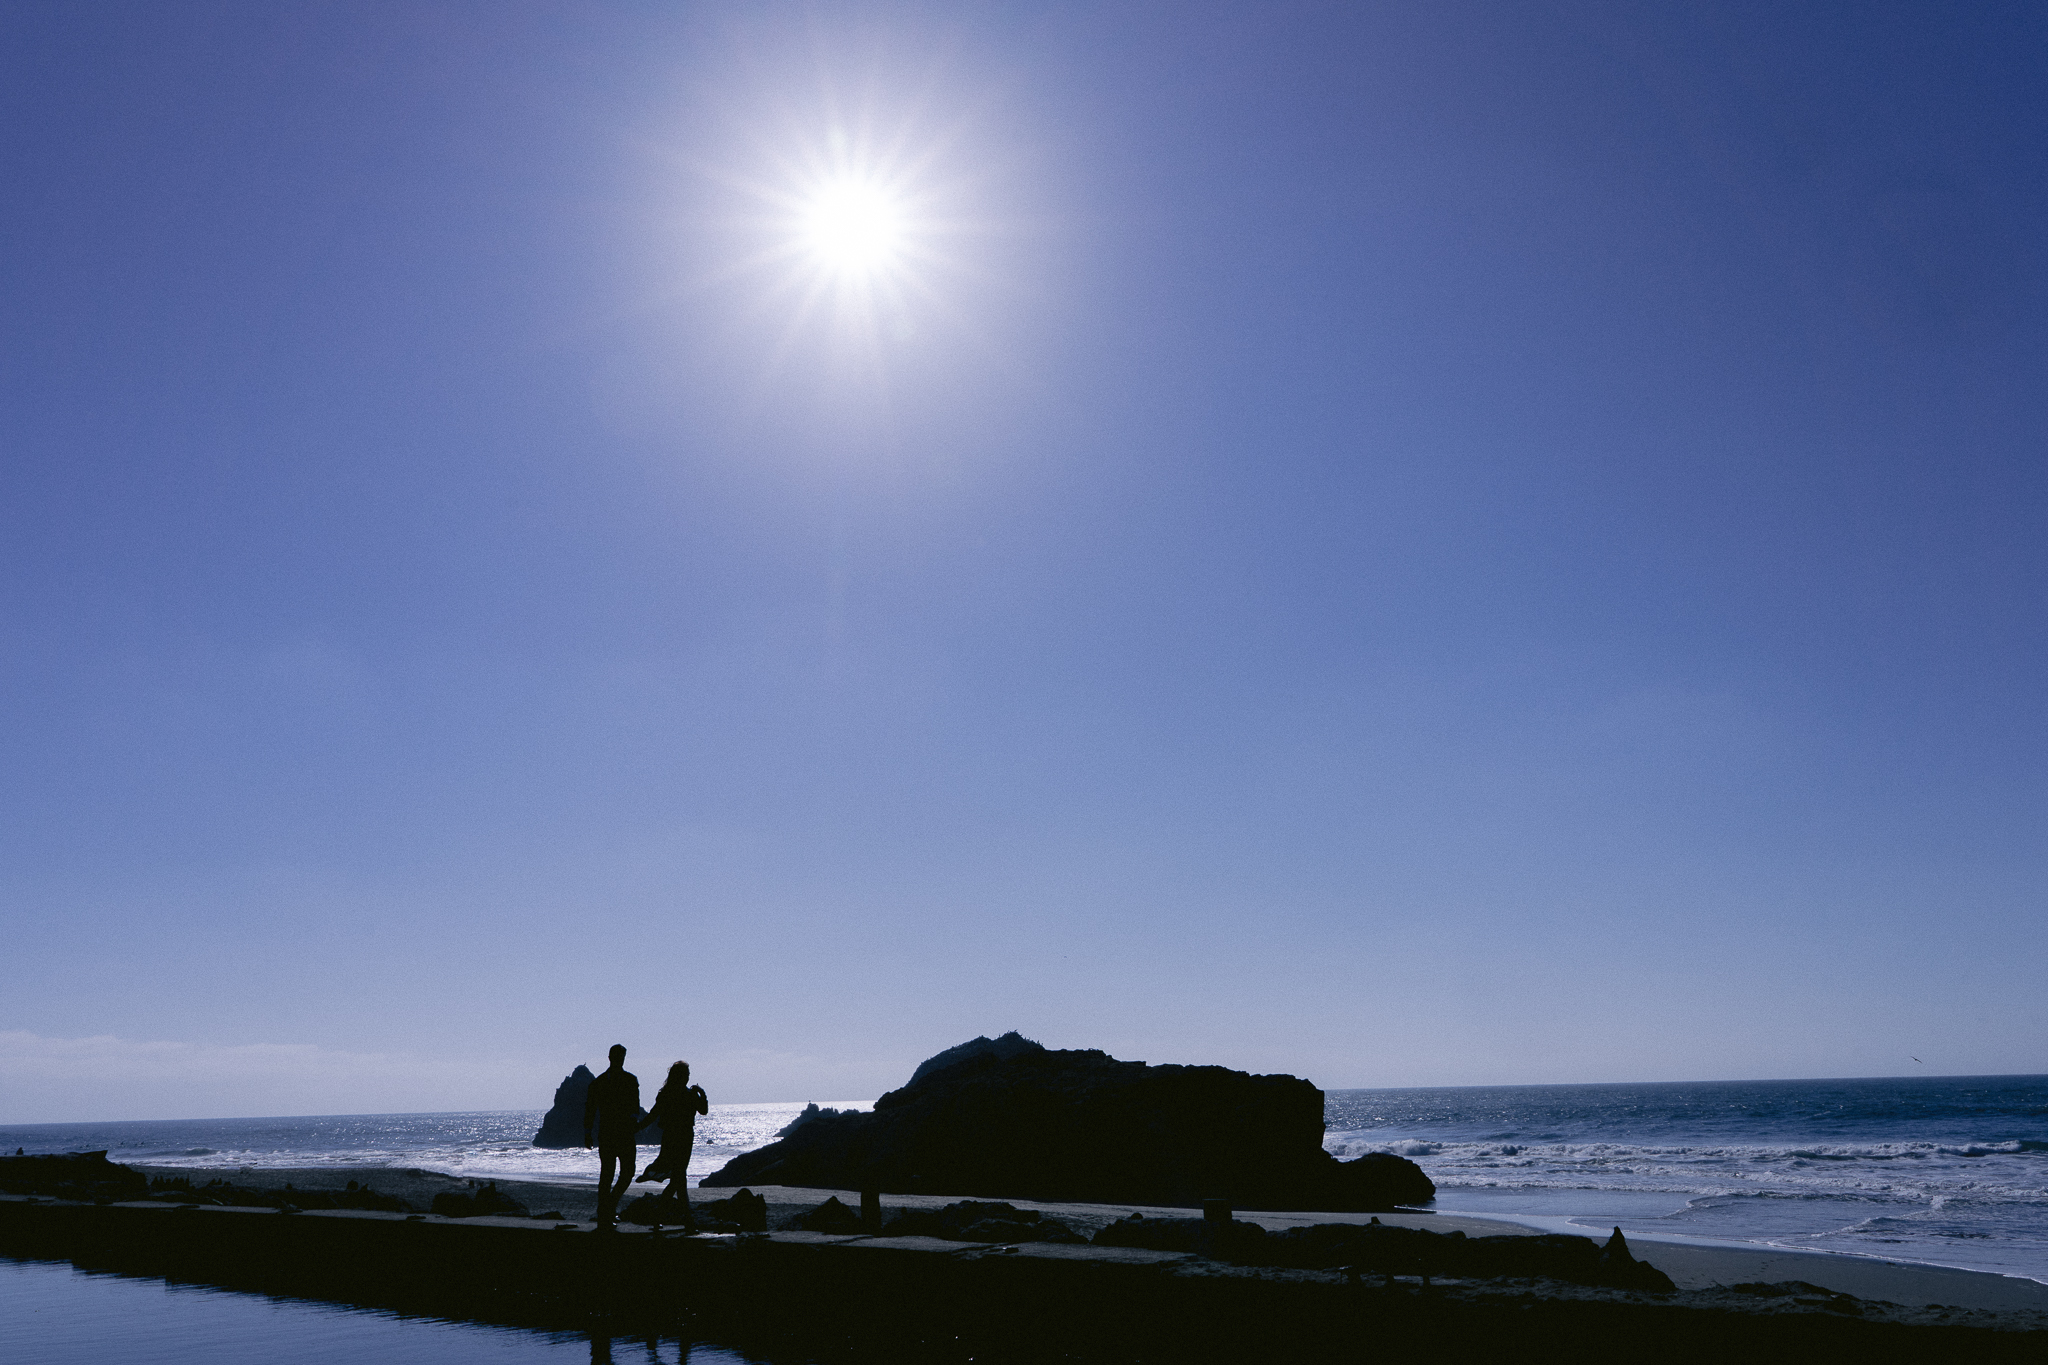 Backlit photo showing the shadow of an engaged couple walking hand in had along the Sutro Baths structure in San Francisco CA during their engagement session.